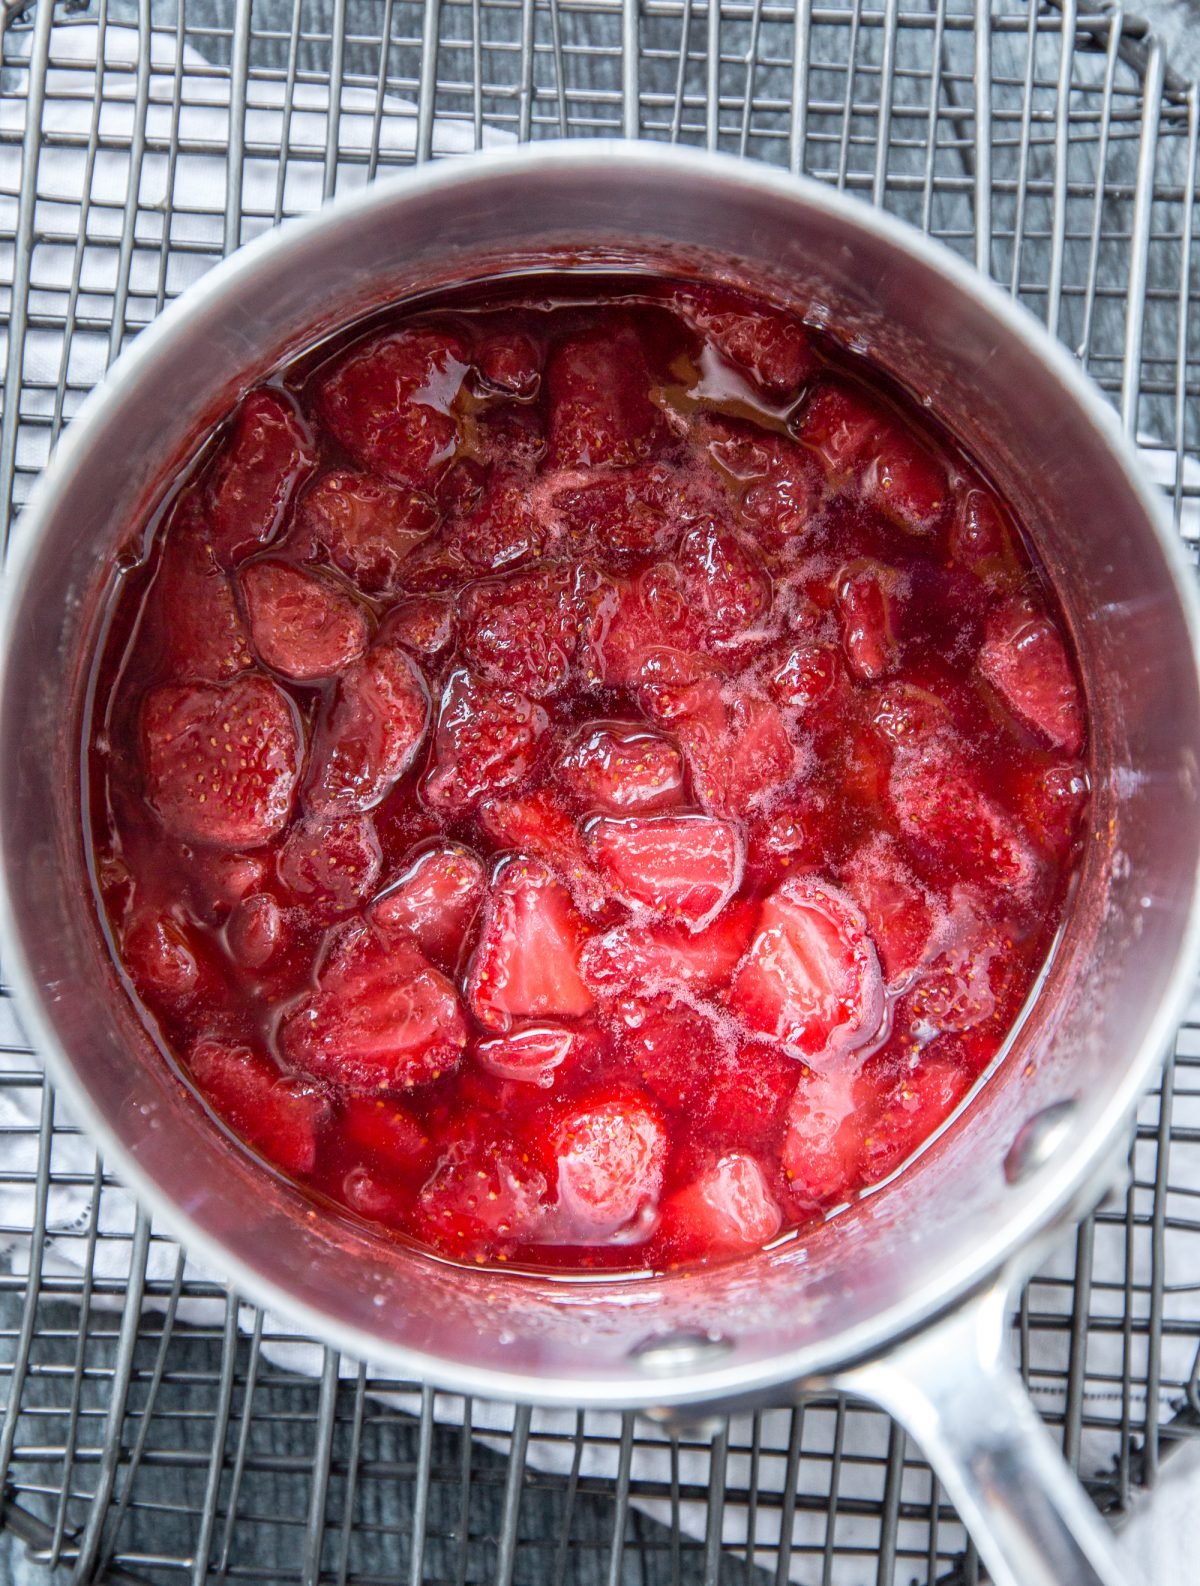 A metal sauce pot filled with strawberry sauce with some strawberry chunks